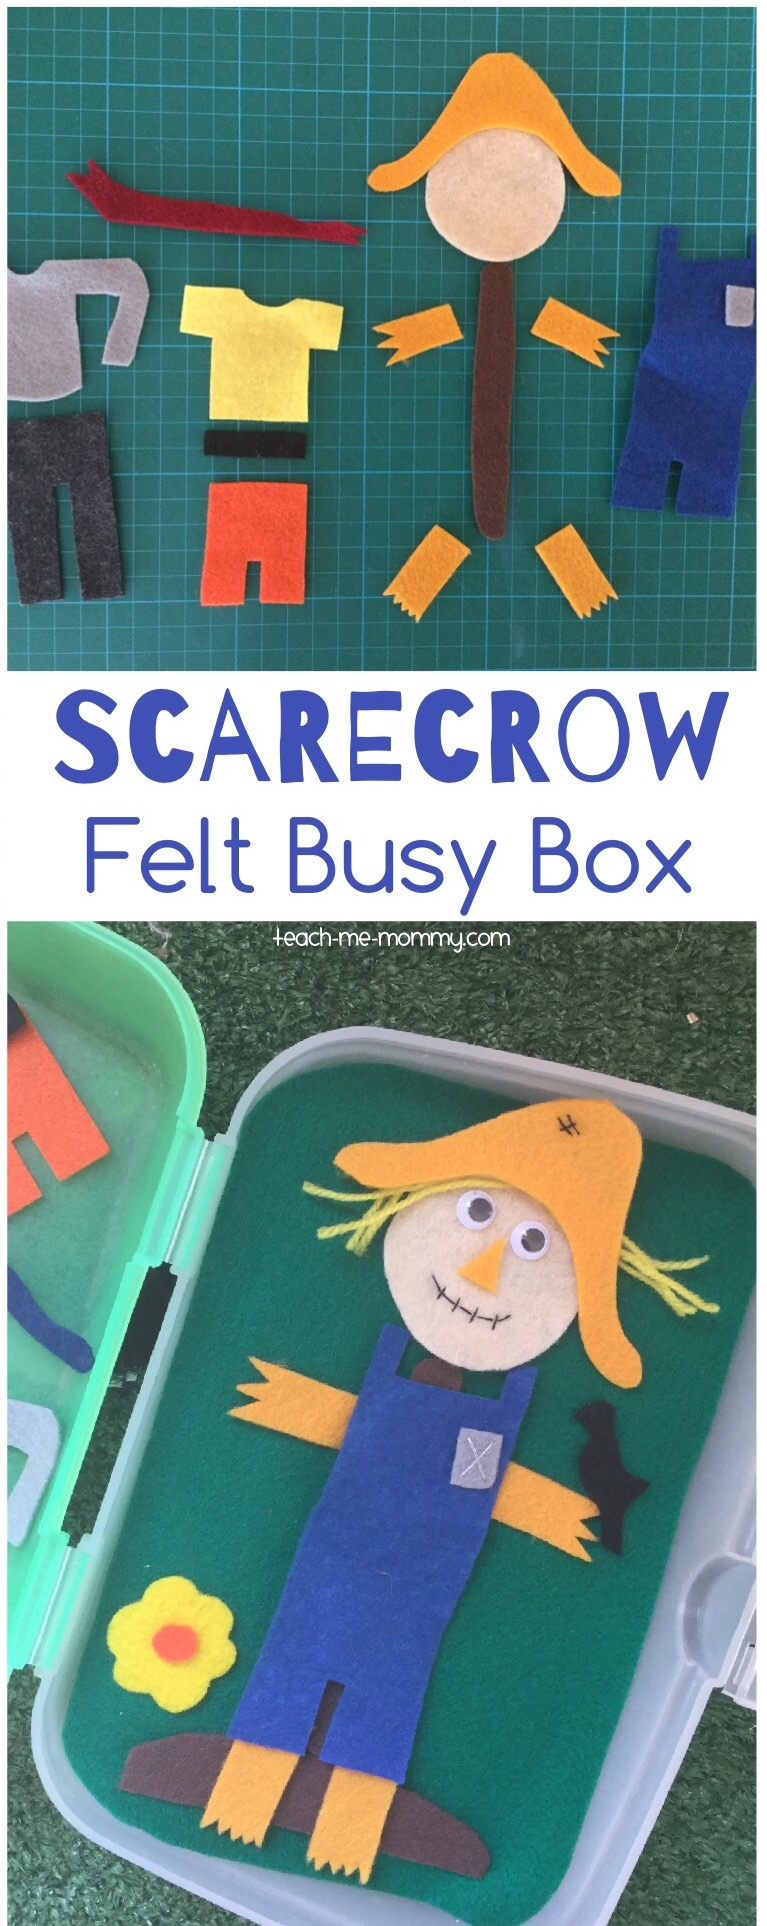 Scarecrow felt busy box